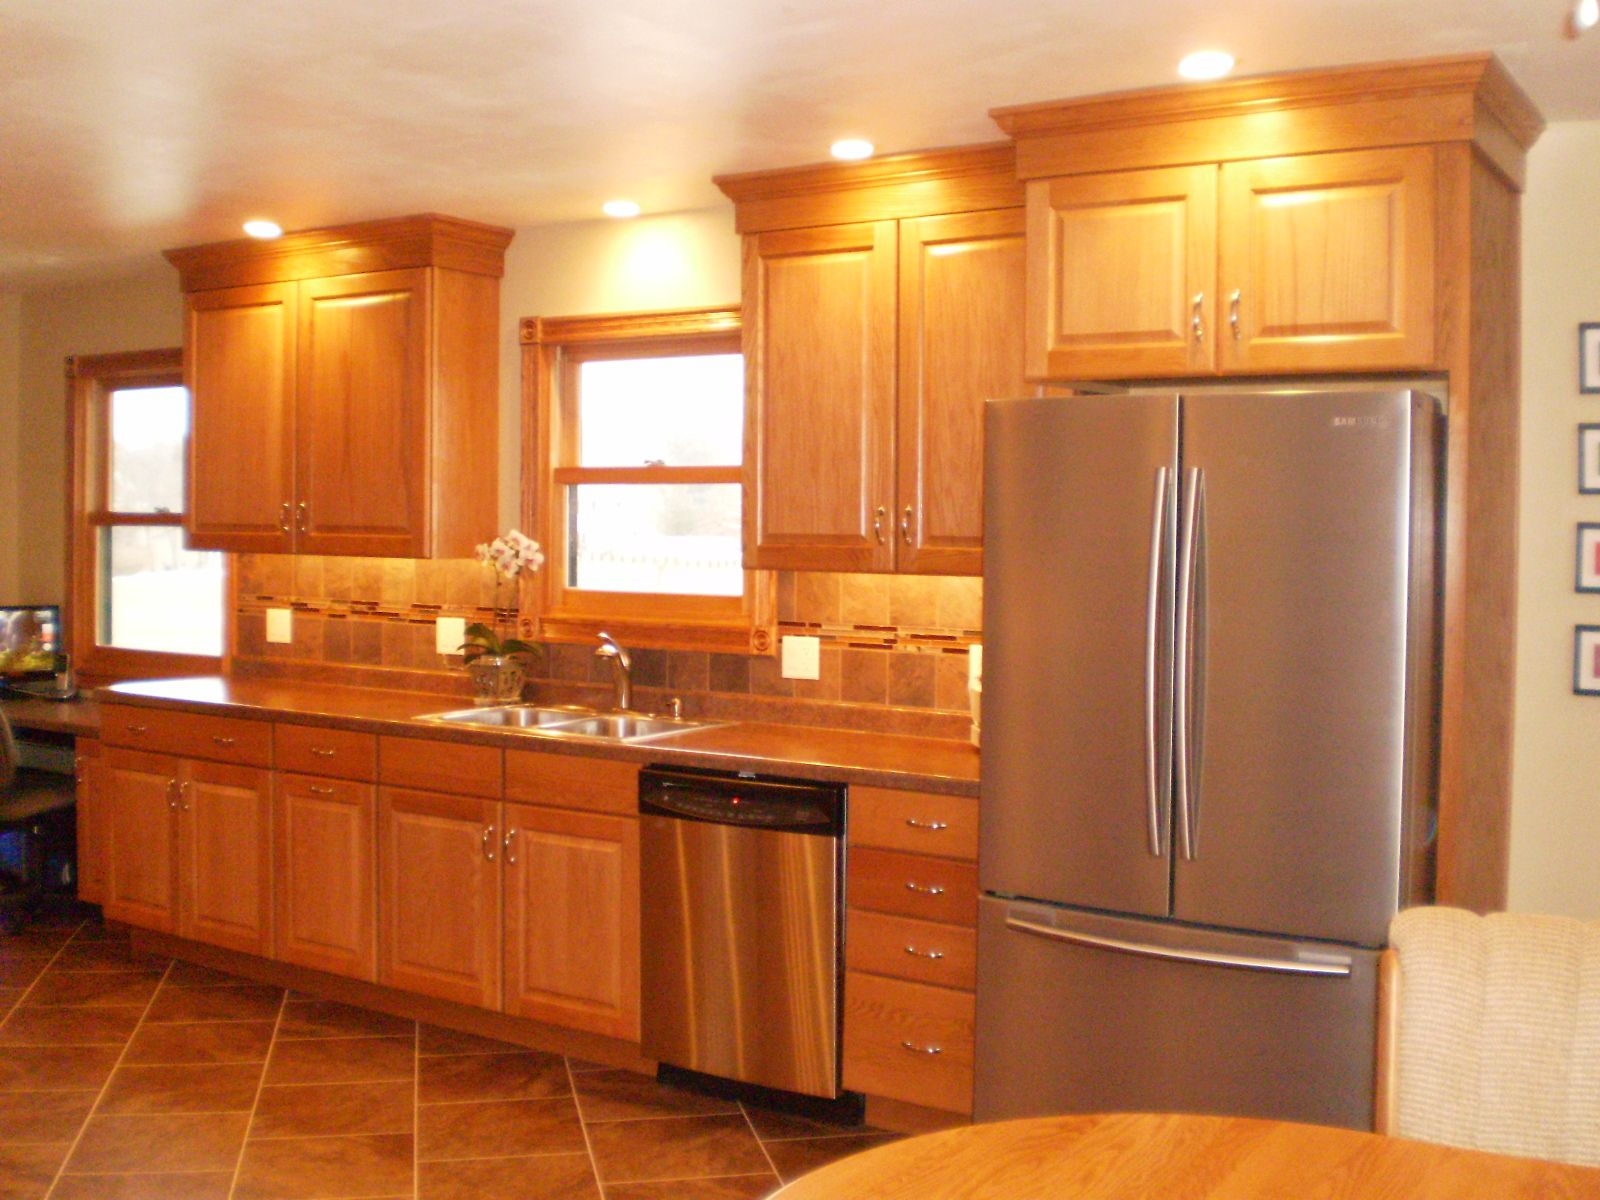 Kitchen Paint Colors With Oak Cabinets And Stainless Steel Appliances And Grey Floor Bedroom Col In 2020 Hickory Kitchen Cabinets Hickory Kitchen Kitchen Wall Colors